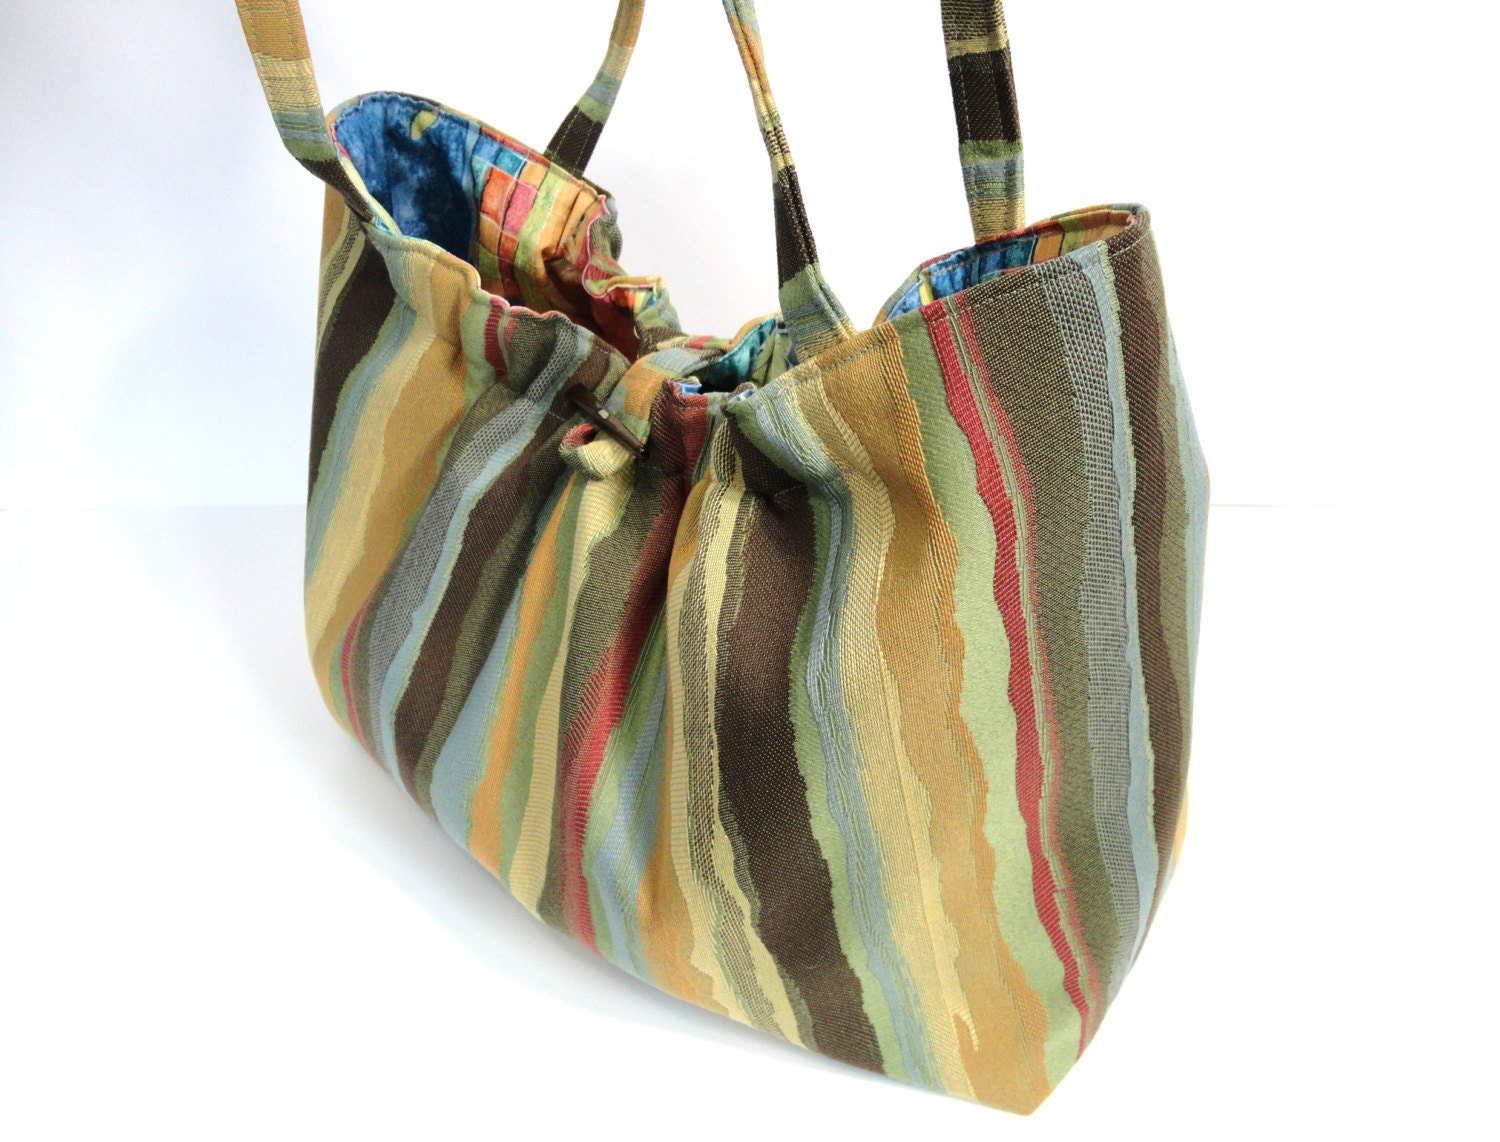 Knitting Project Bags For Sale : Knitting project bag striped tote organizer